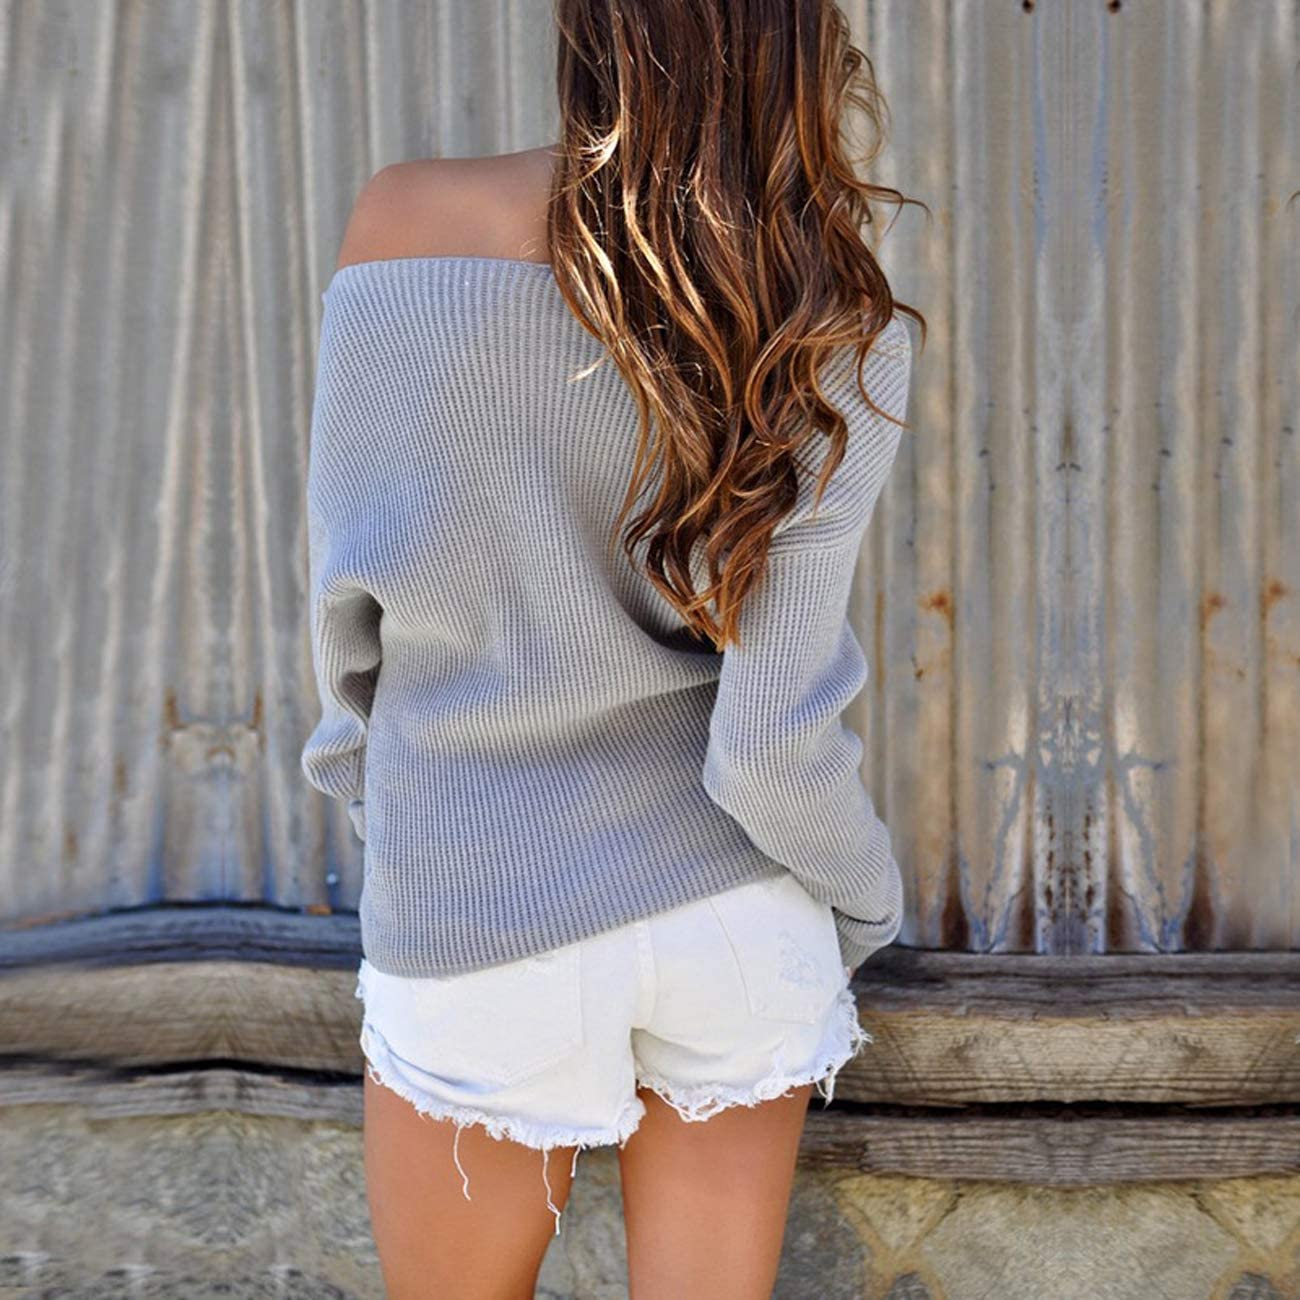 HOYMN Womens Knit Sweater Long Sleeve Off Shoulder Jumpers Pullover Loose Solid Color Casual Winter Sweatshirt